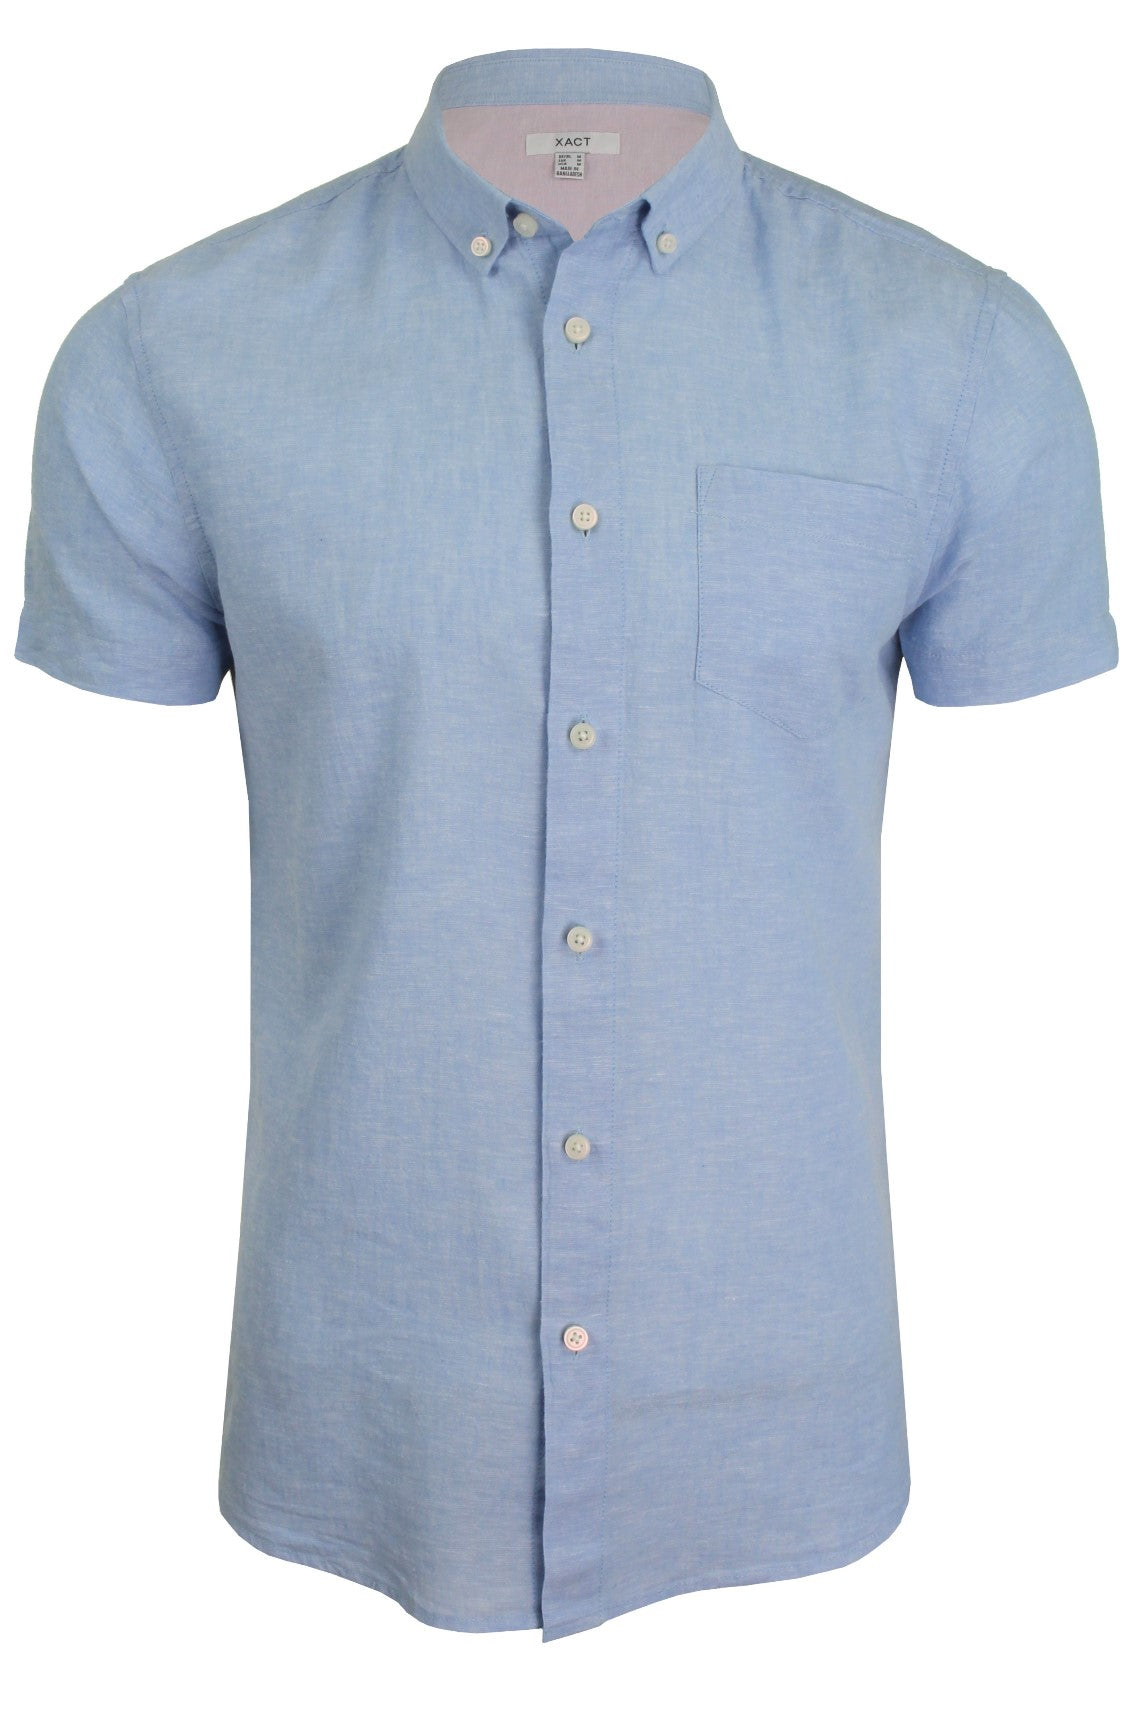 Xact Short Sleeved Linen Mix Shirt-Main Image